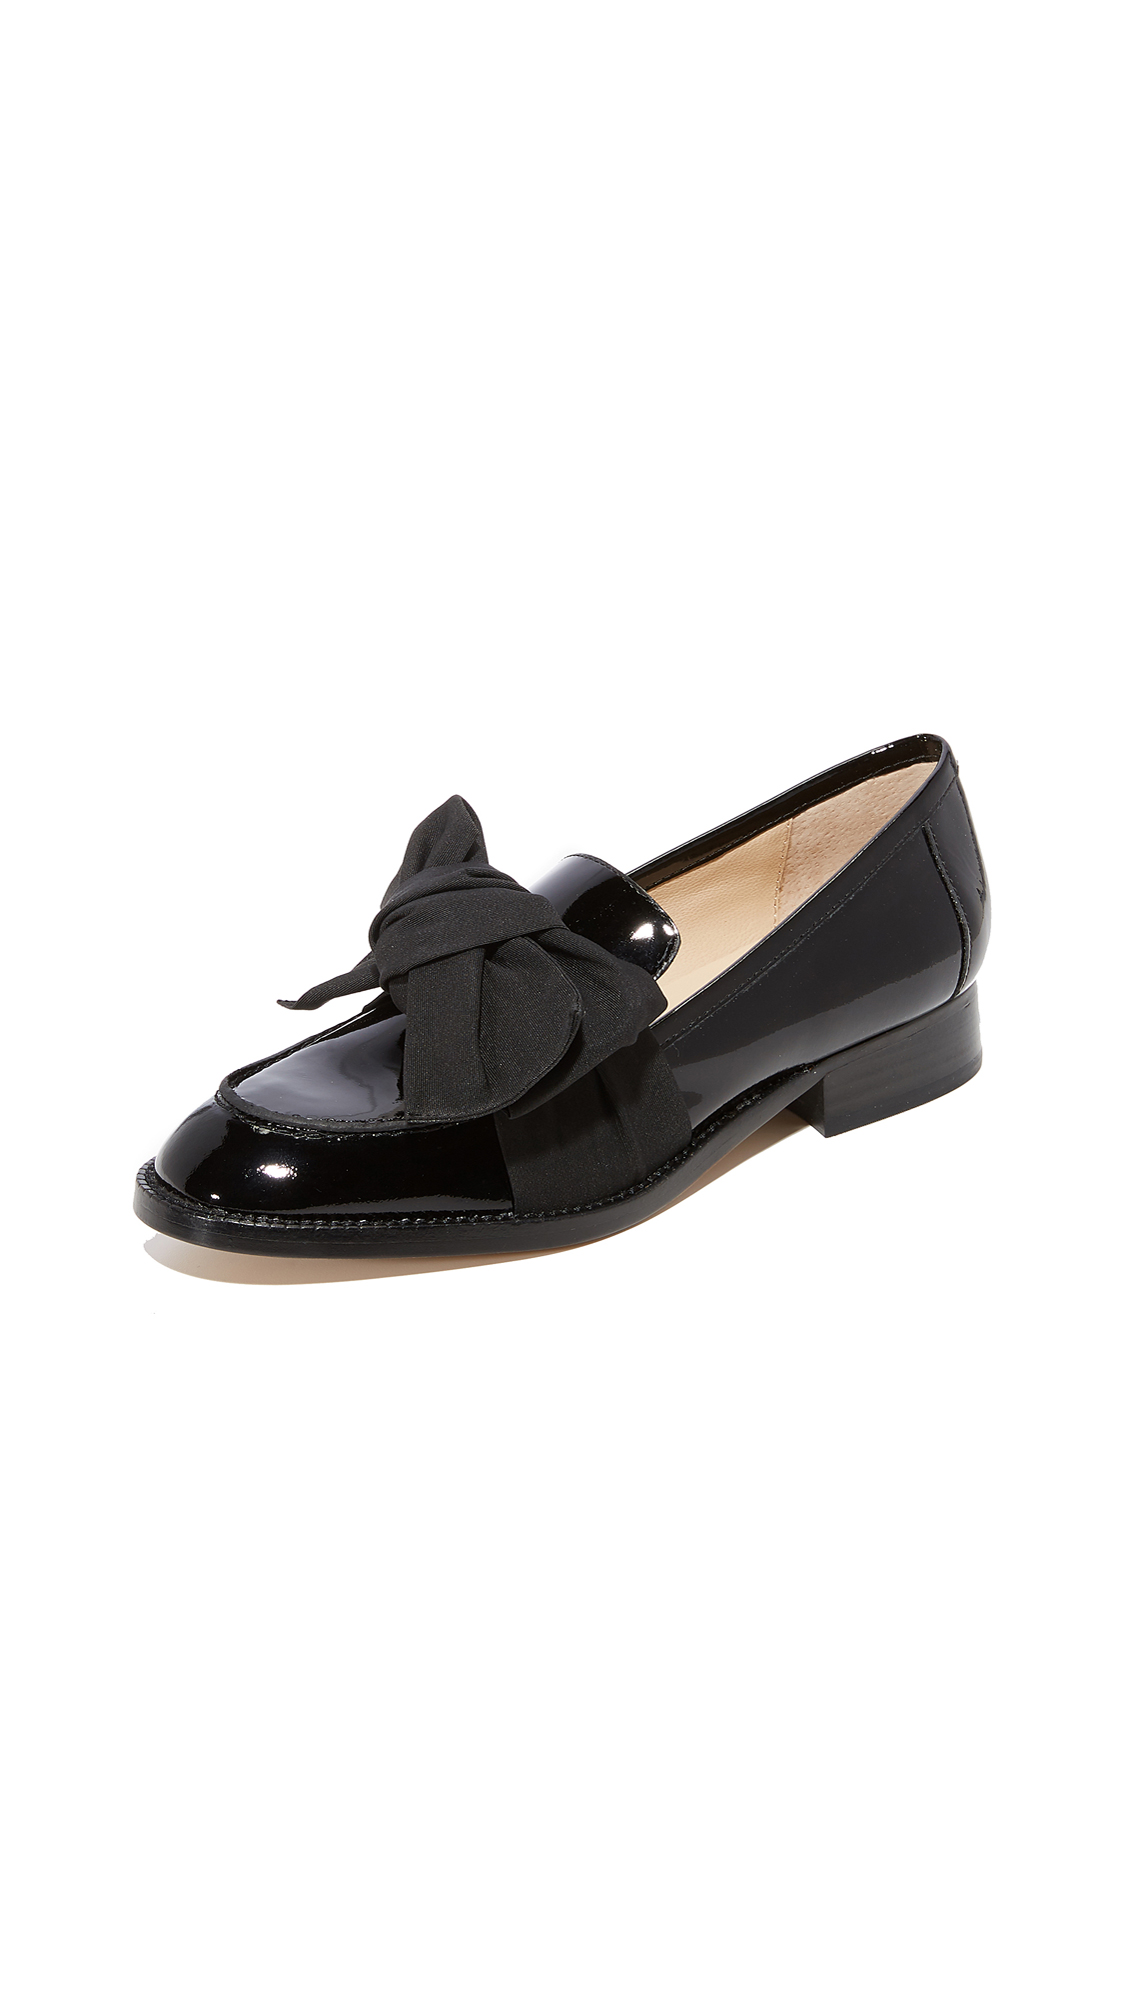 Botkier Violet Bow Loafers - Black